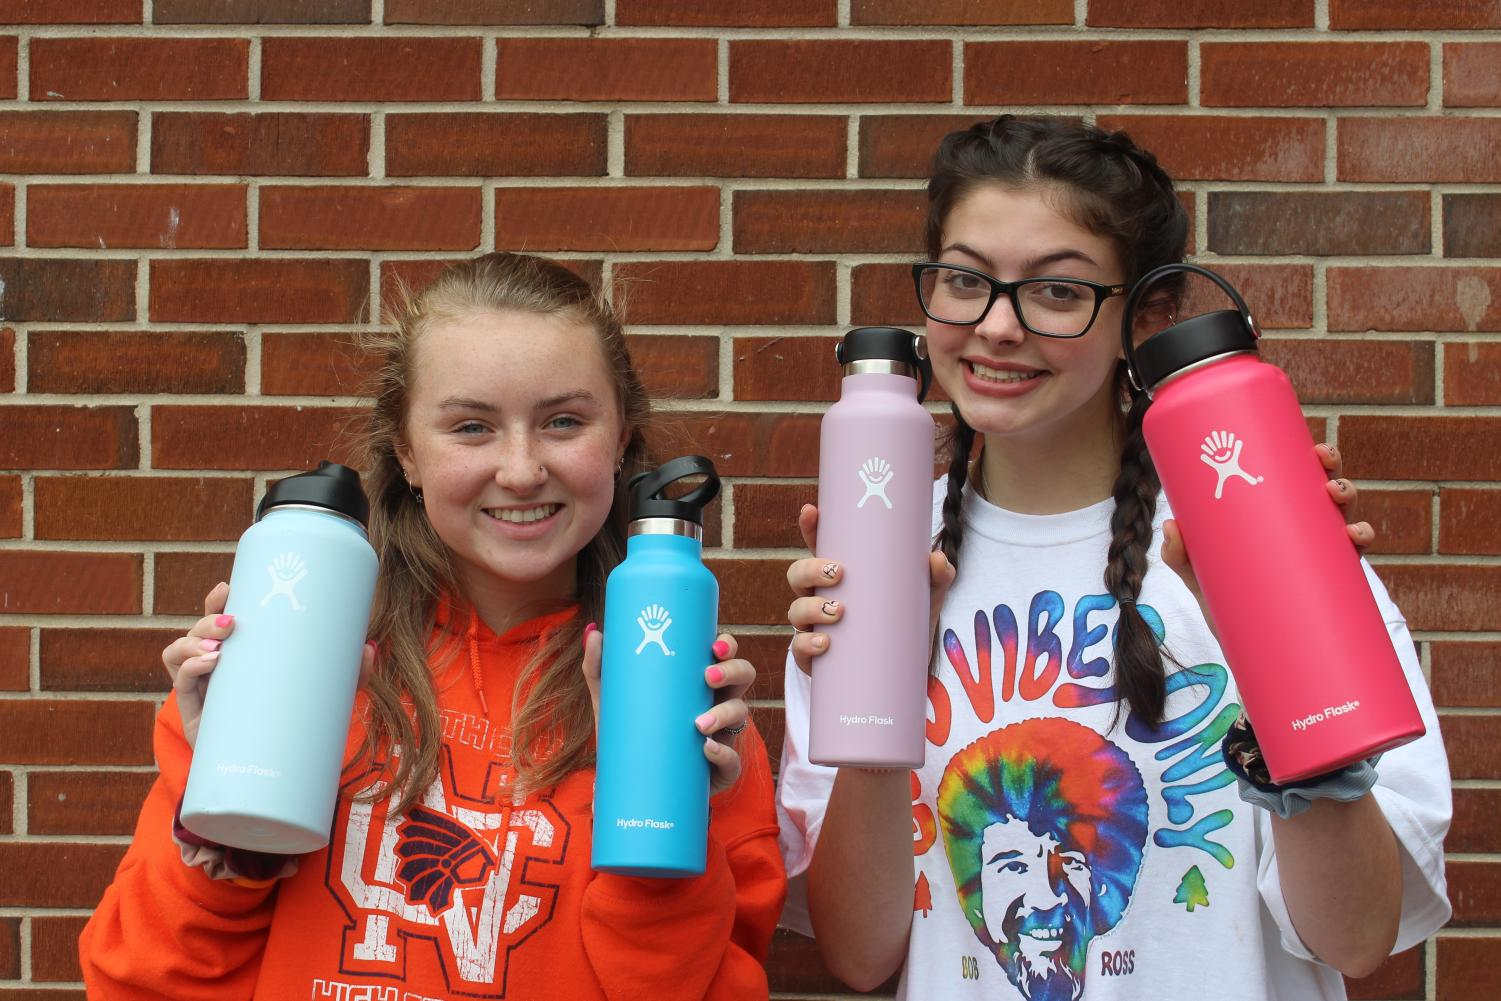 NC's halls fill with VSCO girls, e-girls, and clowns as students commemorate TikTok/meme day and celebrate the second day of 2019's Homecoming week. Eager to show off their warrior spirit, nearly every NC student carries Hydro Flasks and scrunchies and wear golden chains to dress up as their favorite TikTok or meme contributing to Homecoming's spirit week.